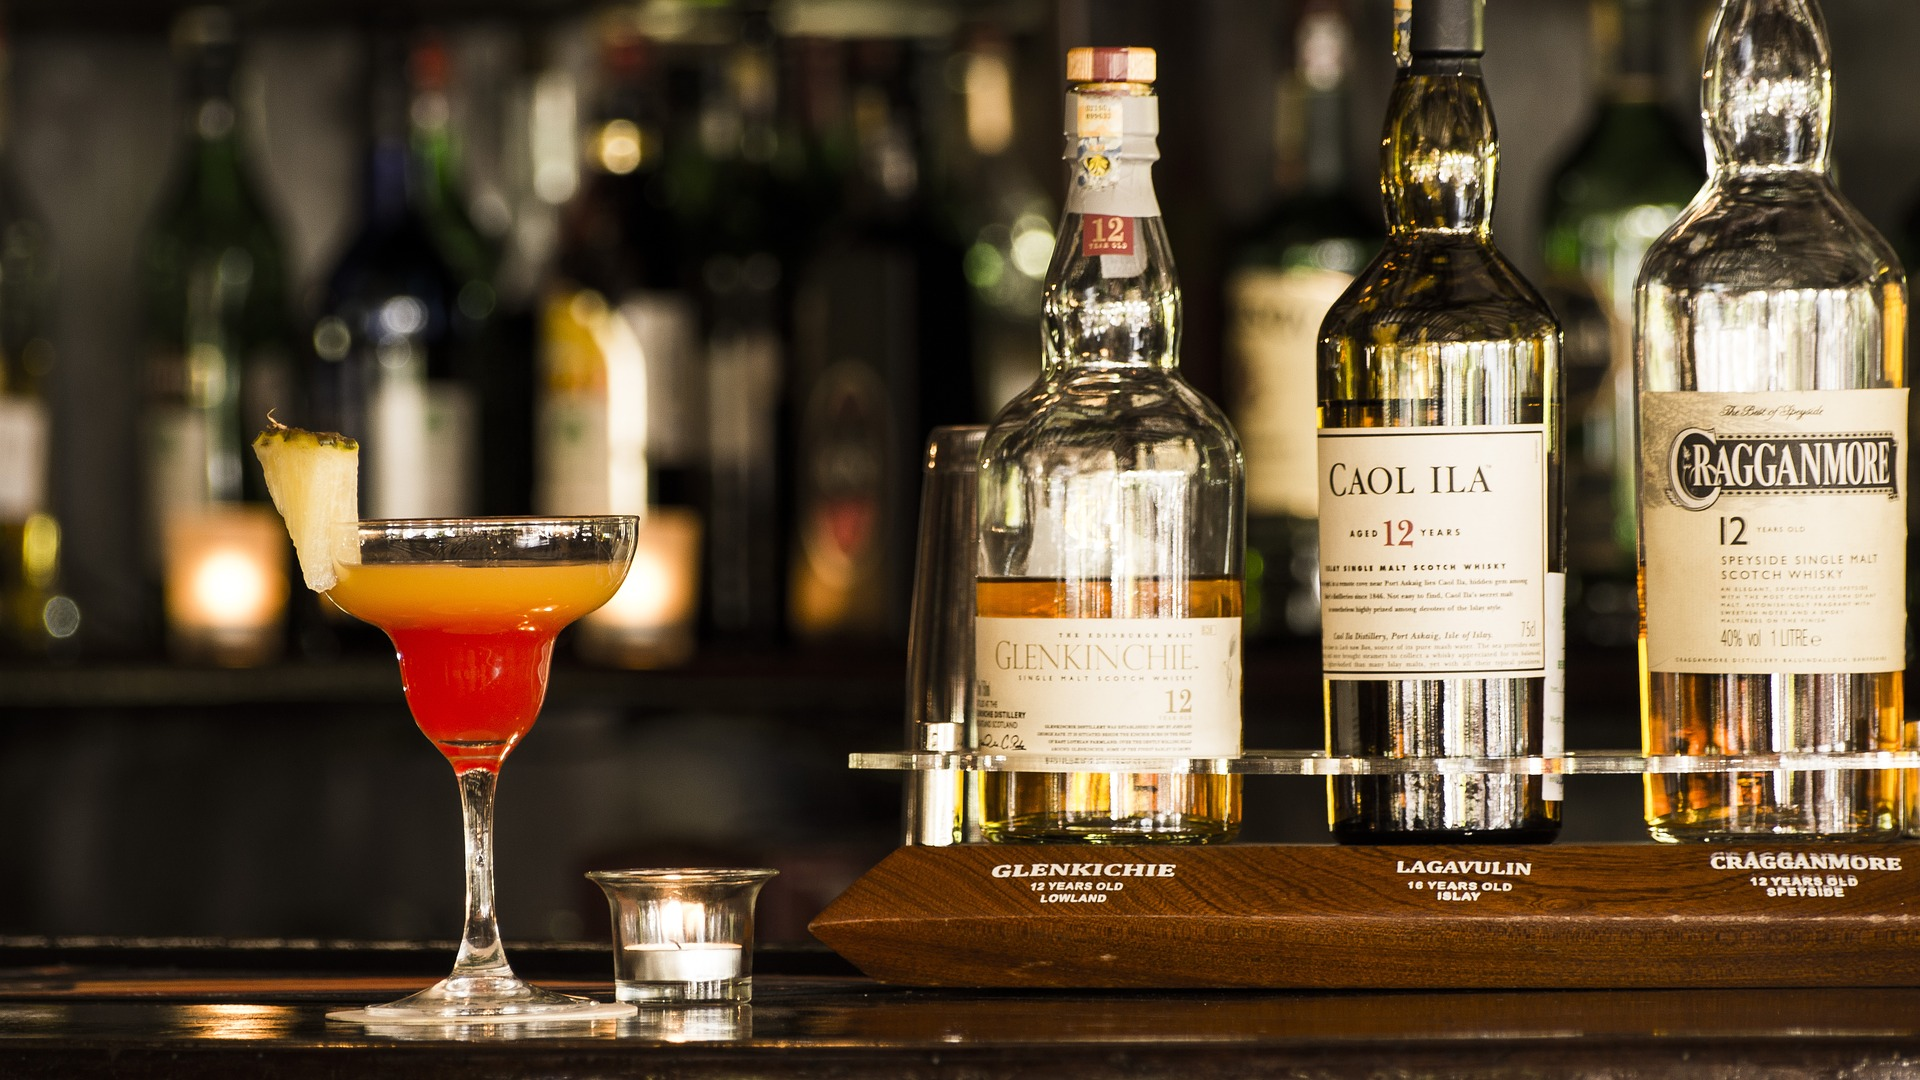 Single malt whiskies are best enjoyed solo, while blended whiskies are better in cocktails.